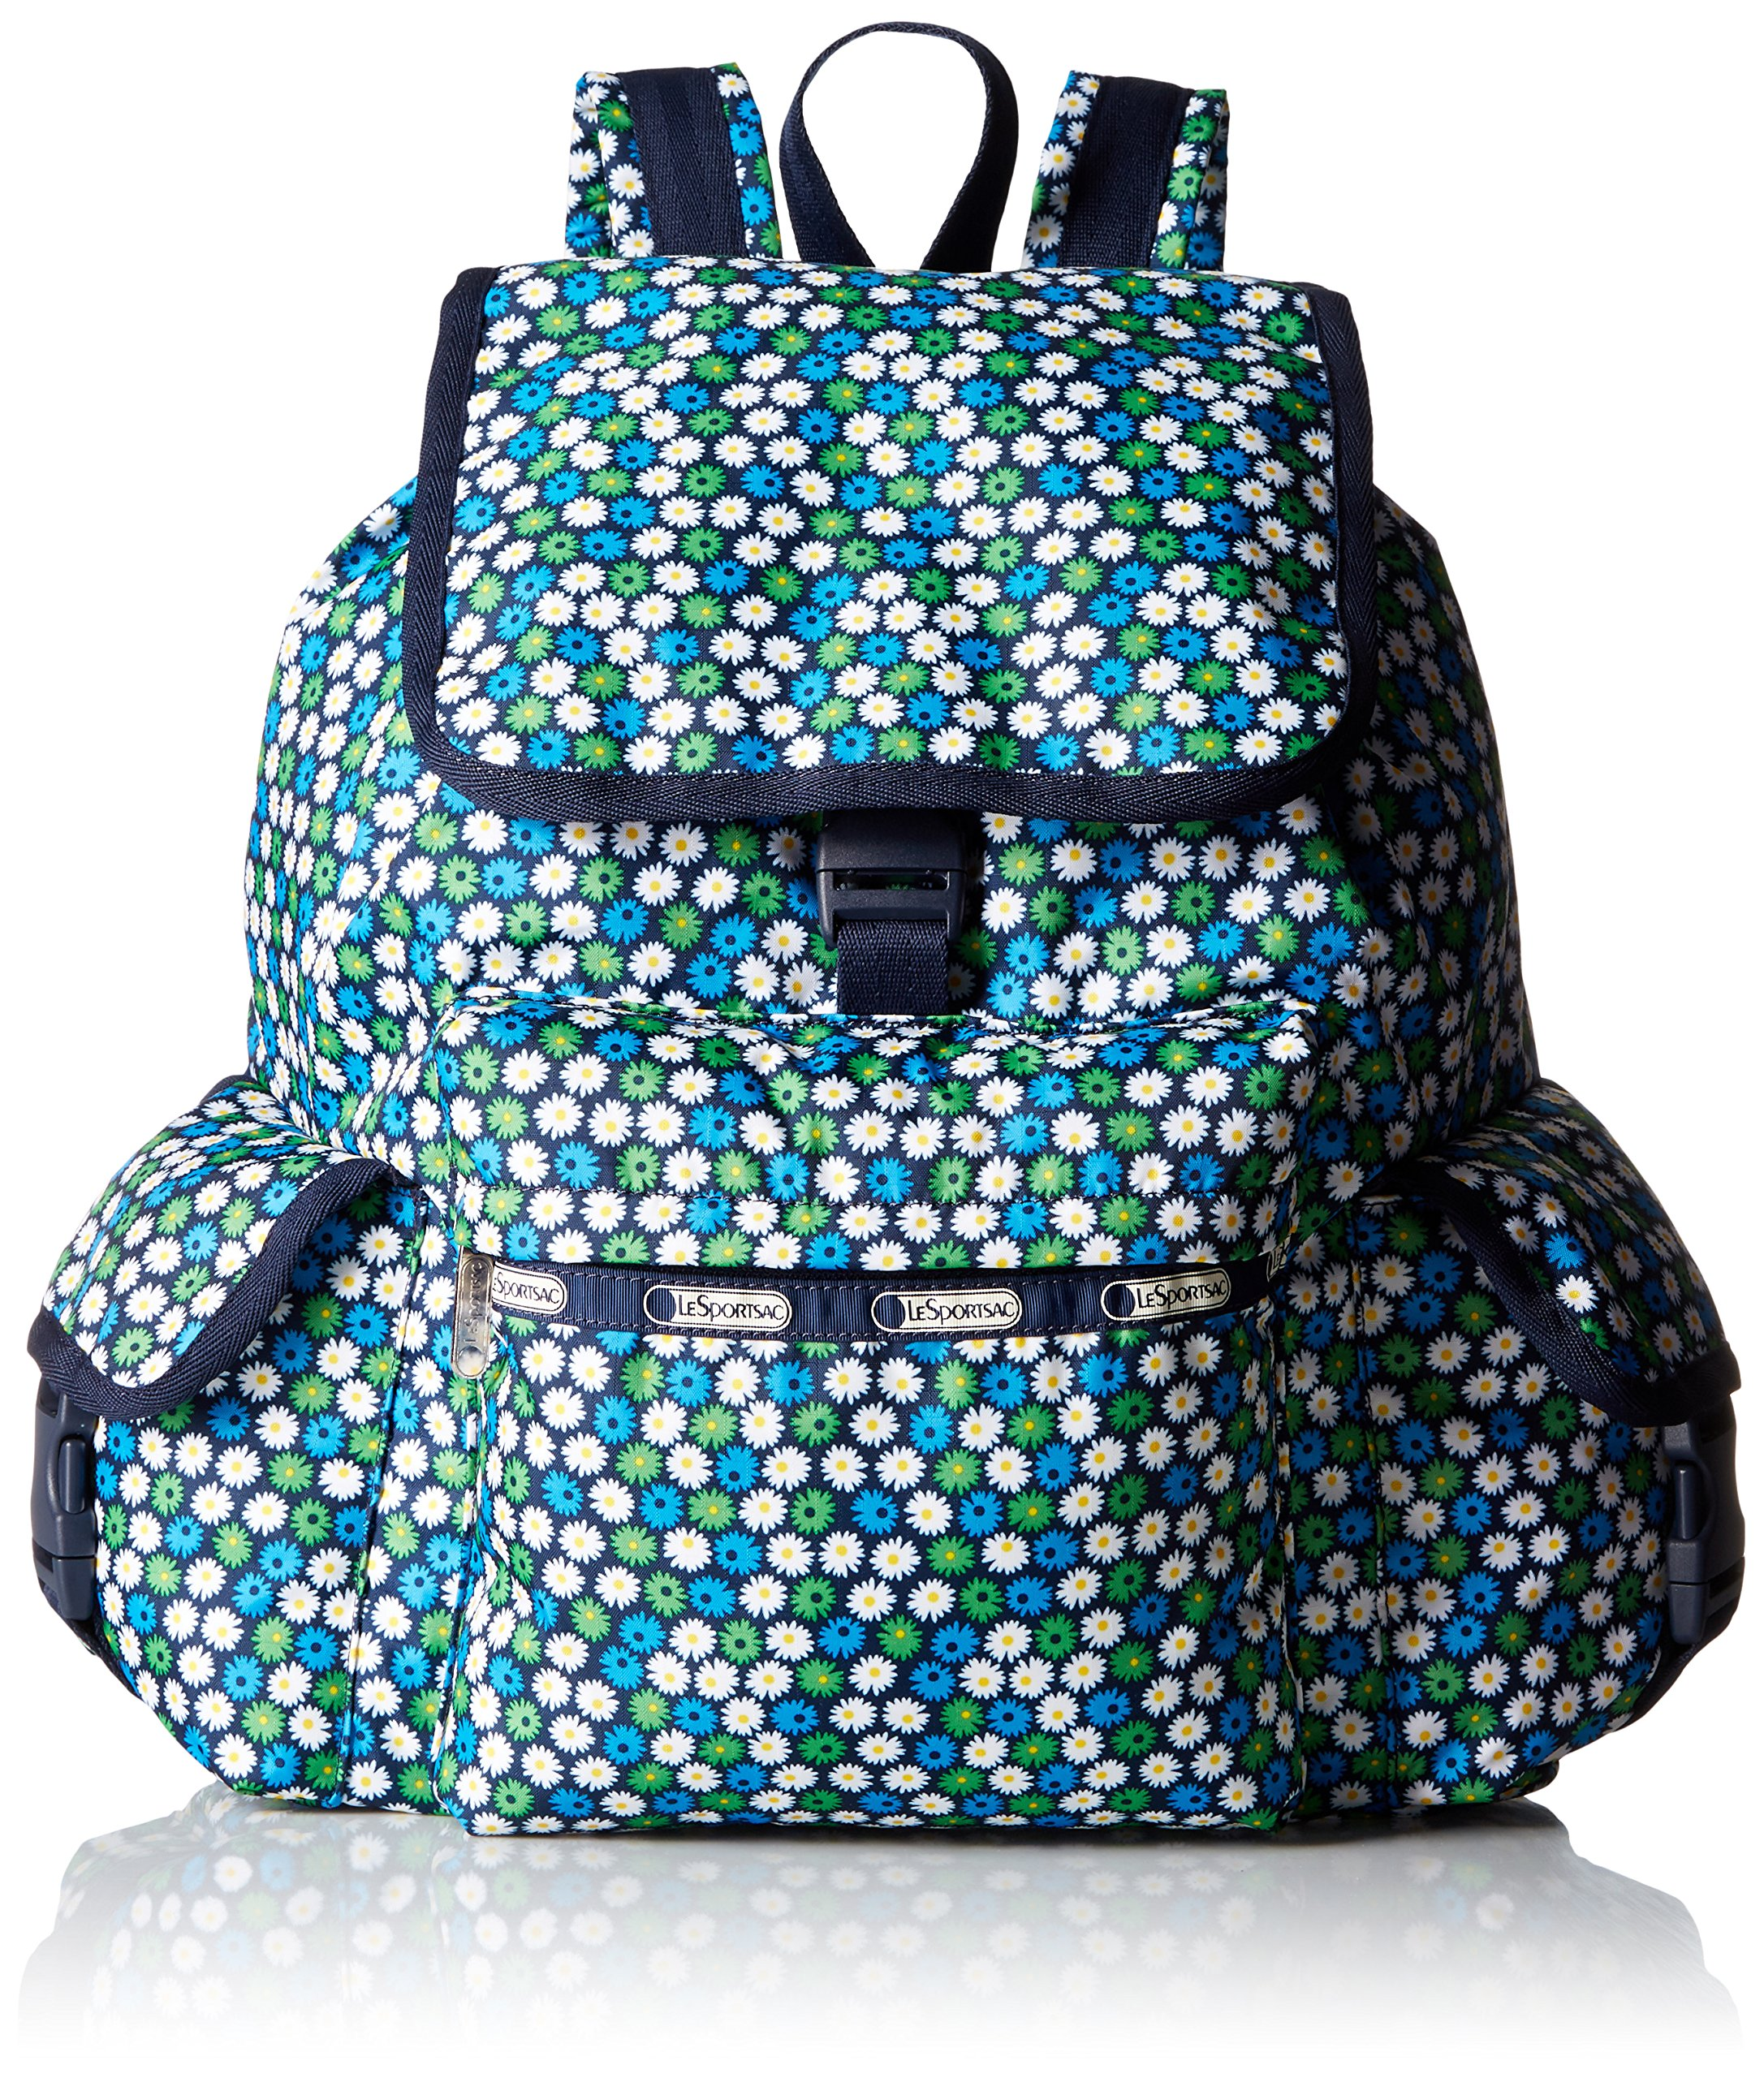 LeSportsac Voyager Back pack, Travel Daisy, One Size